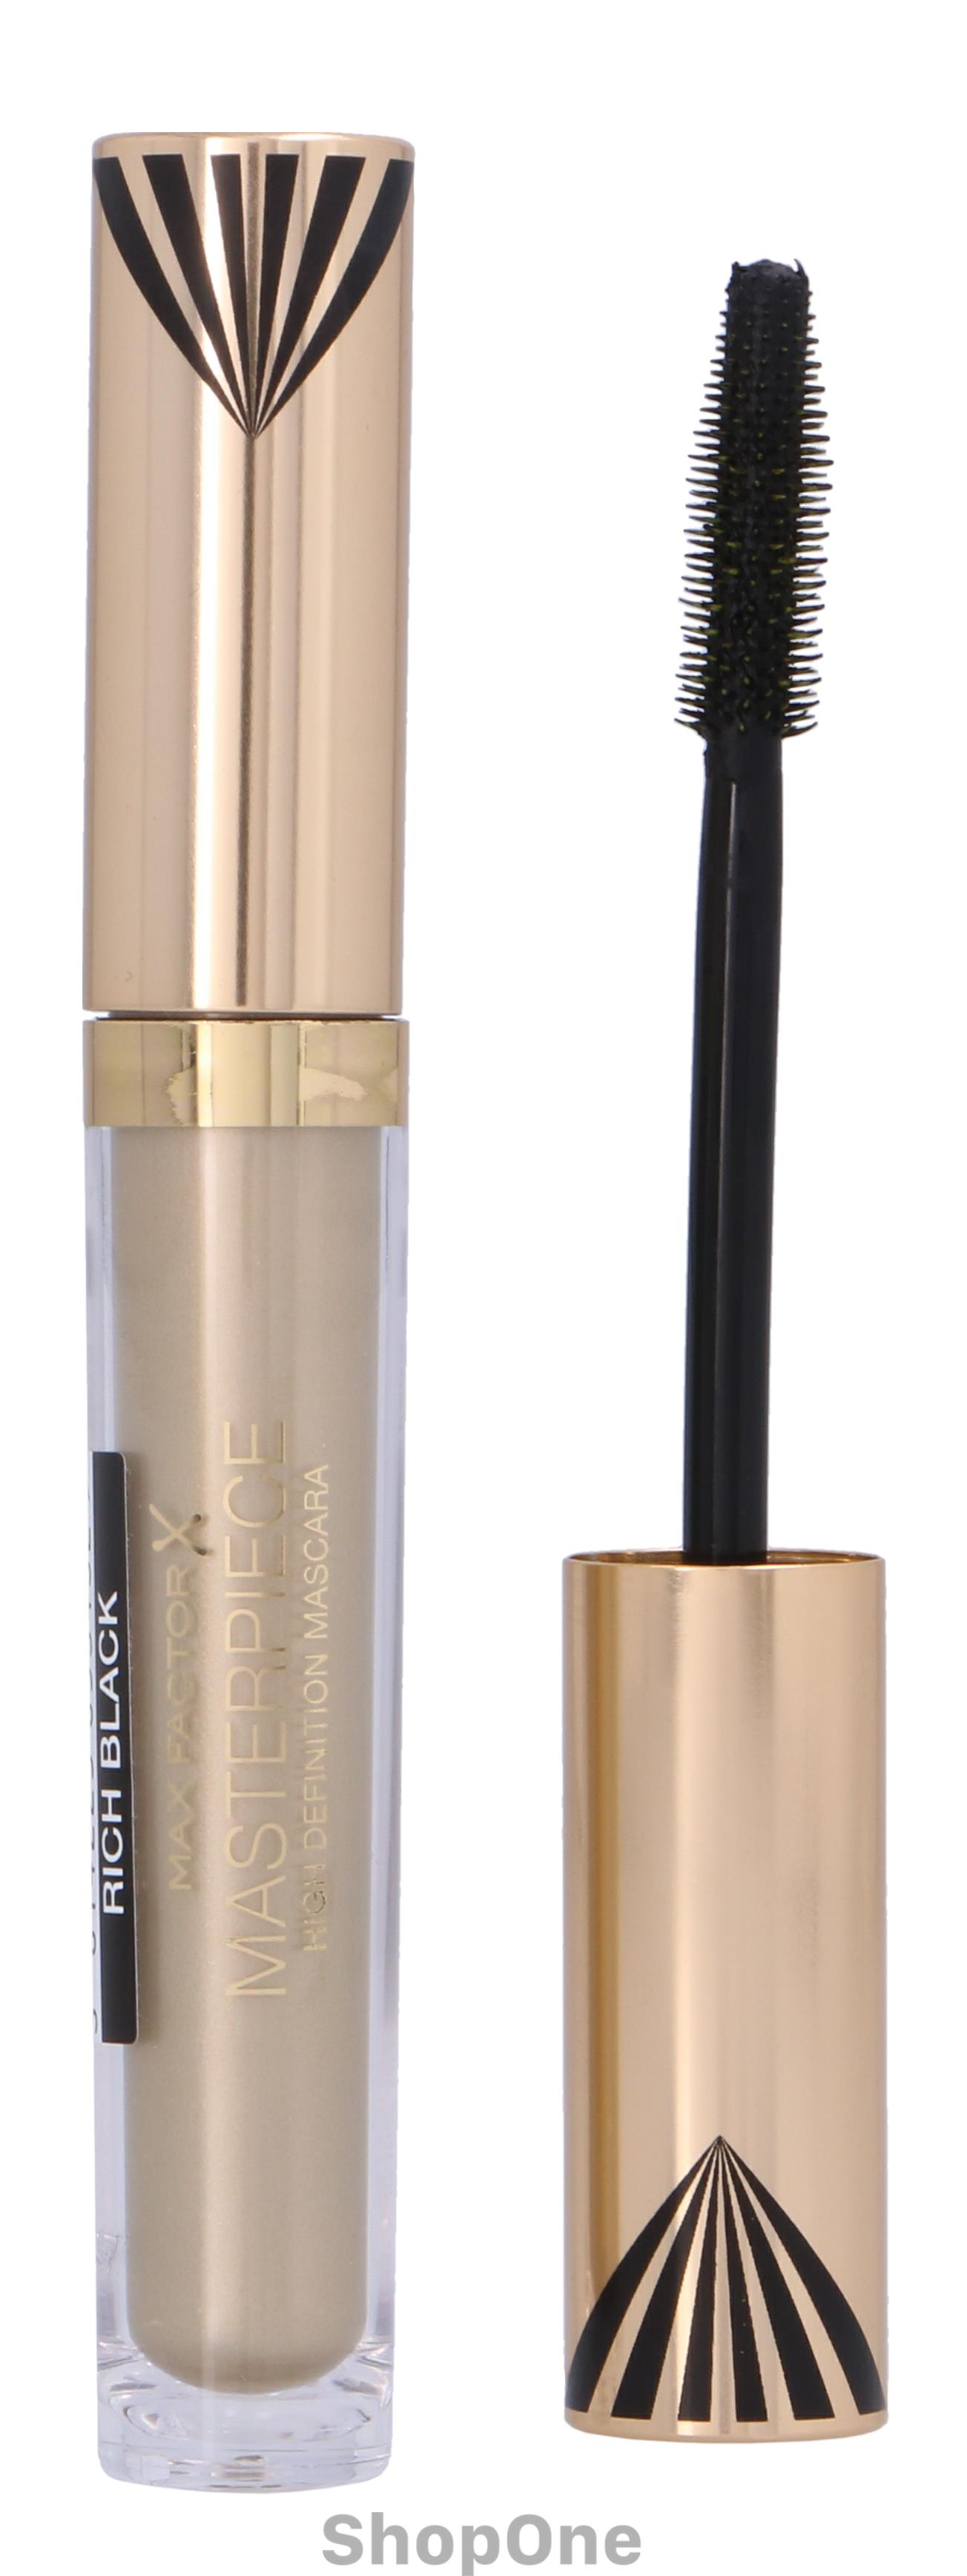 Image of   Masterpiece High Definition Mascara 4 ml fra Max Factor